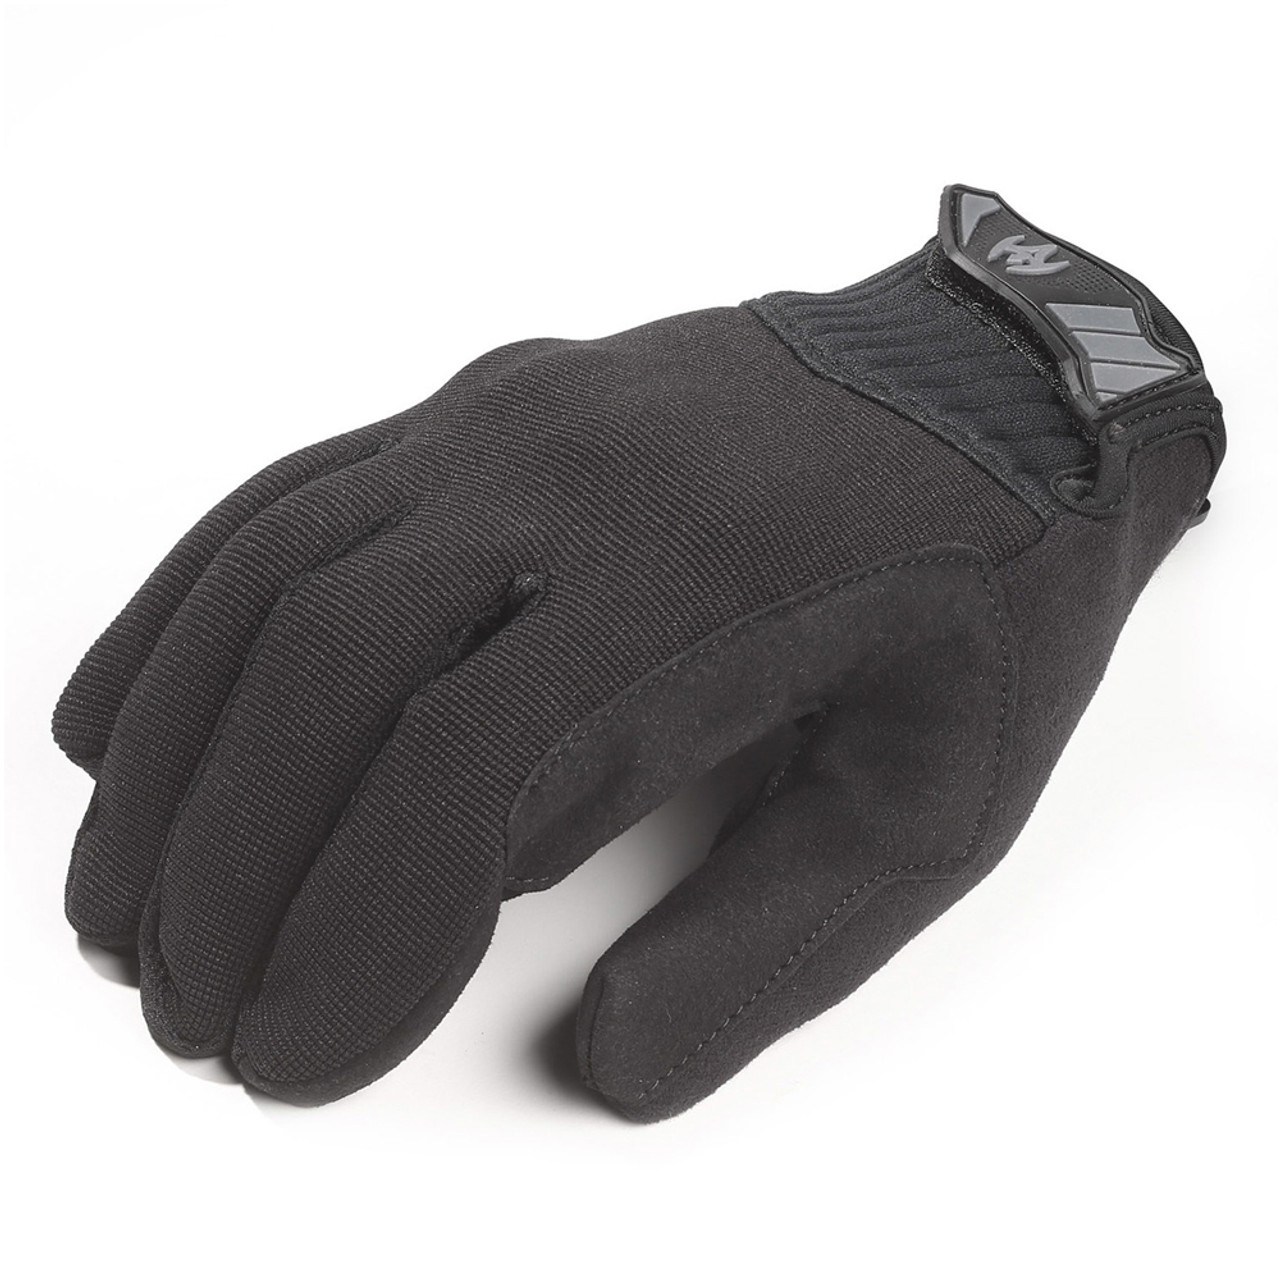 Mx-30 Damascus Interceptor X Police Mx30 Police Gloves